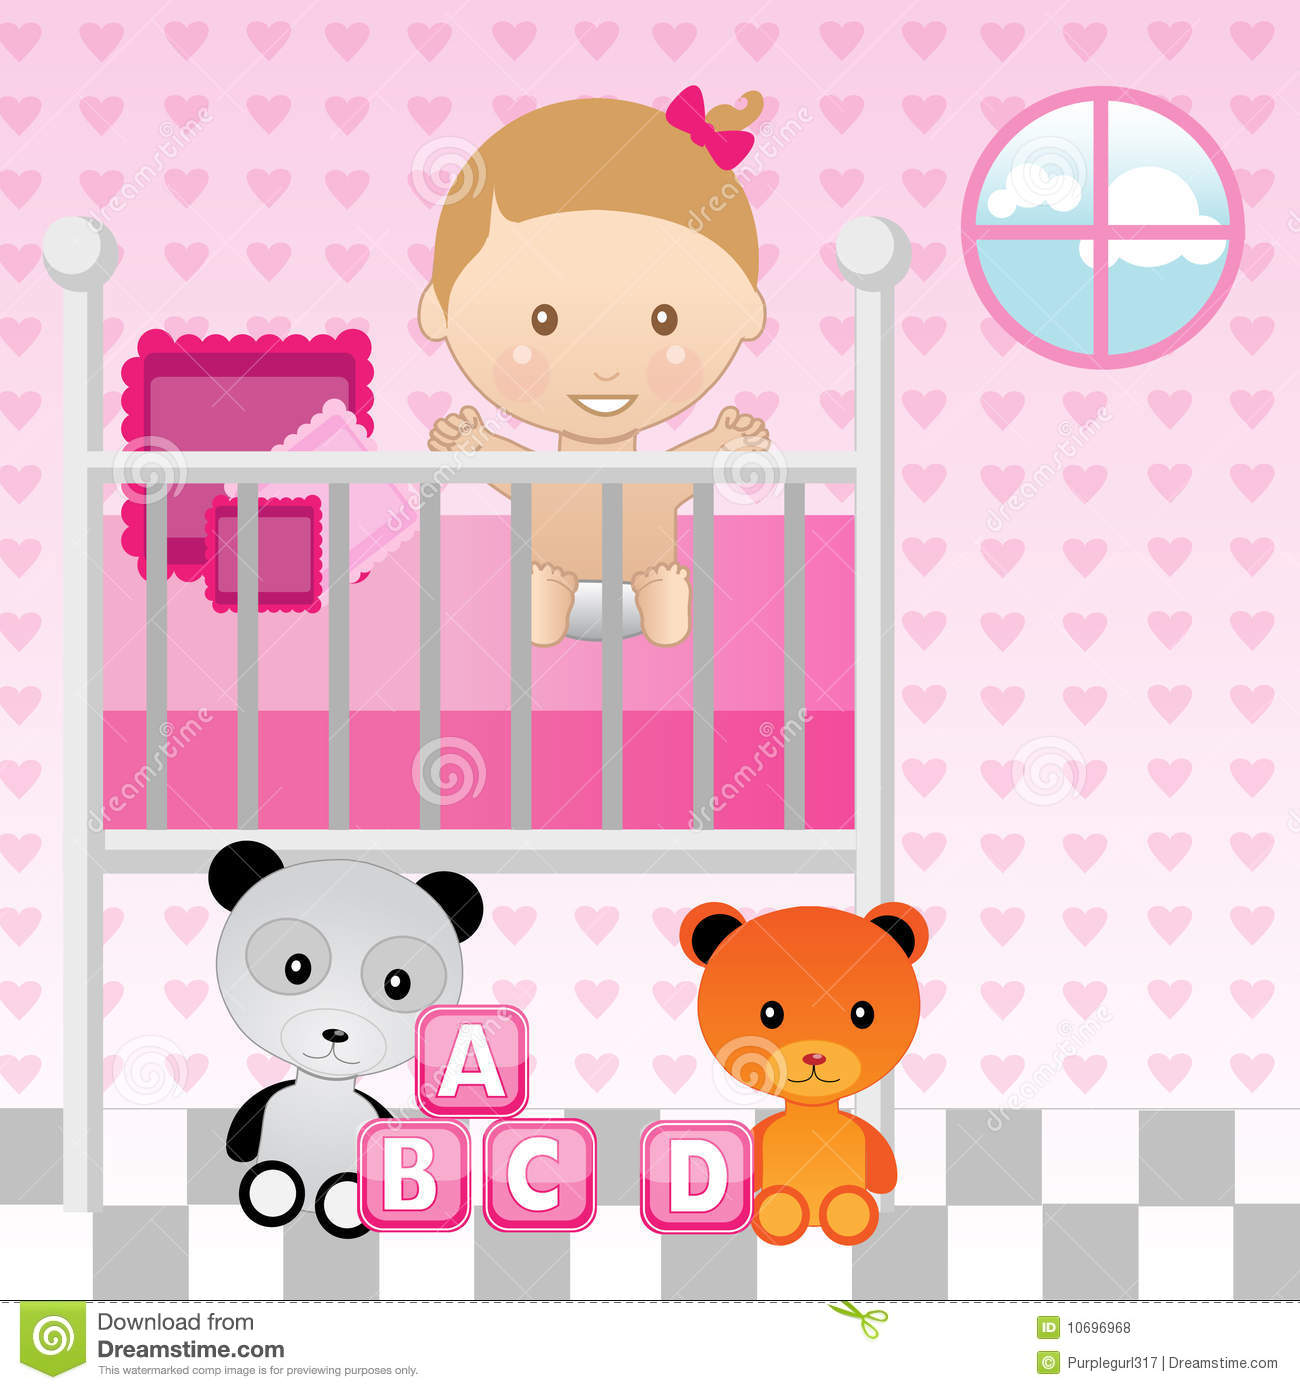 Baby Girl In Crib Royalty Free Stock Photos - Image: 10696968 Pink Teddy Bears With Hearts Wallpaper